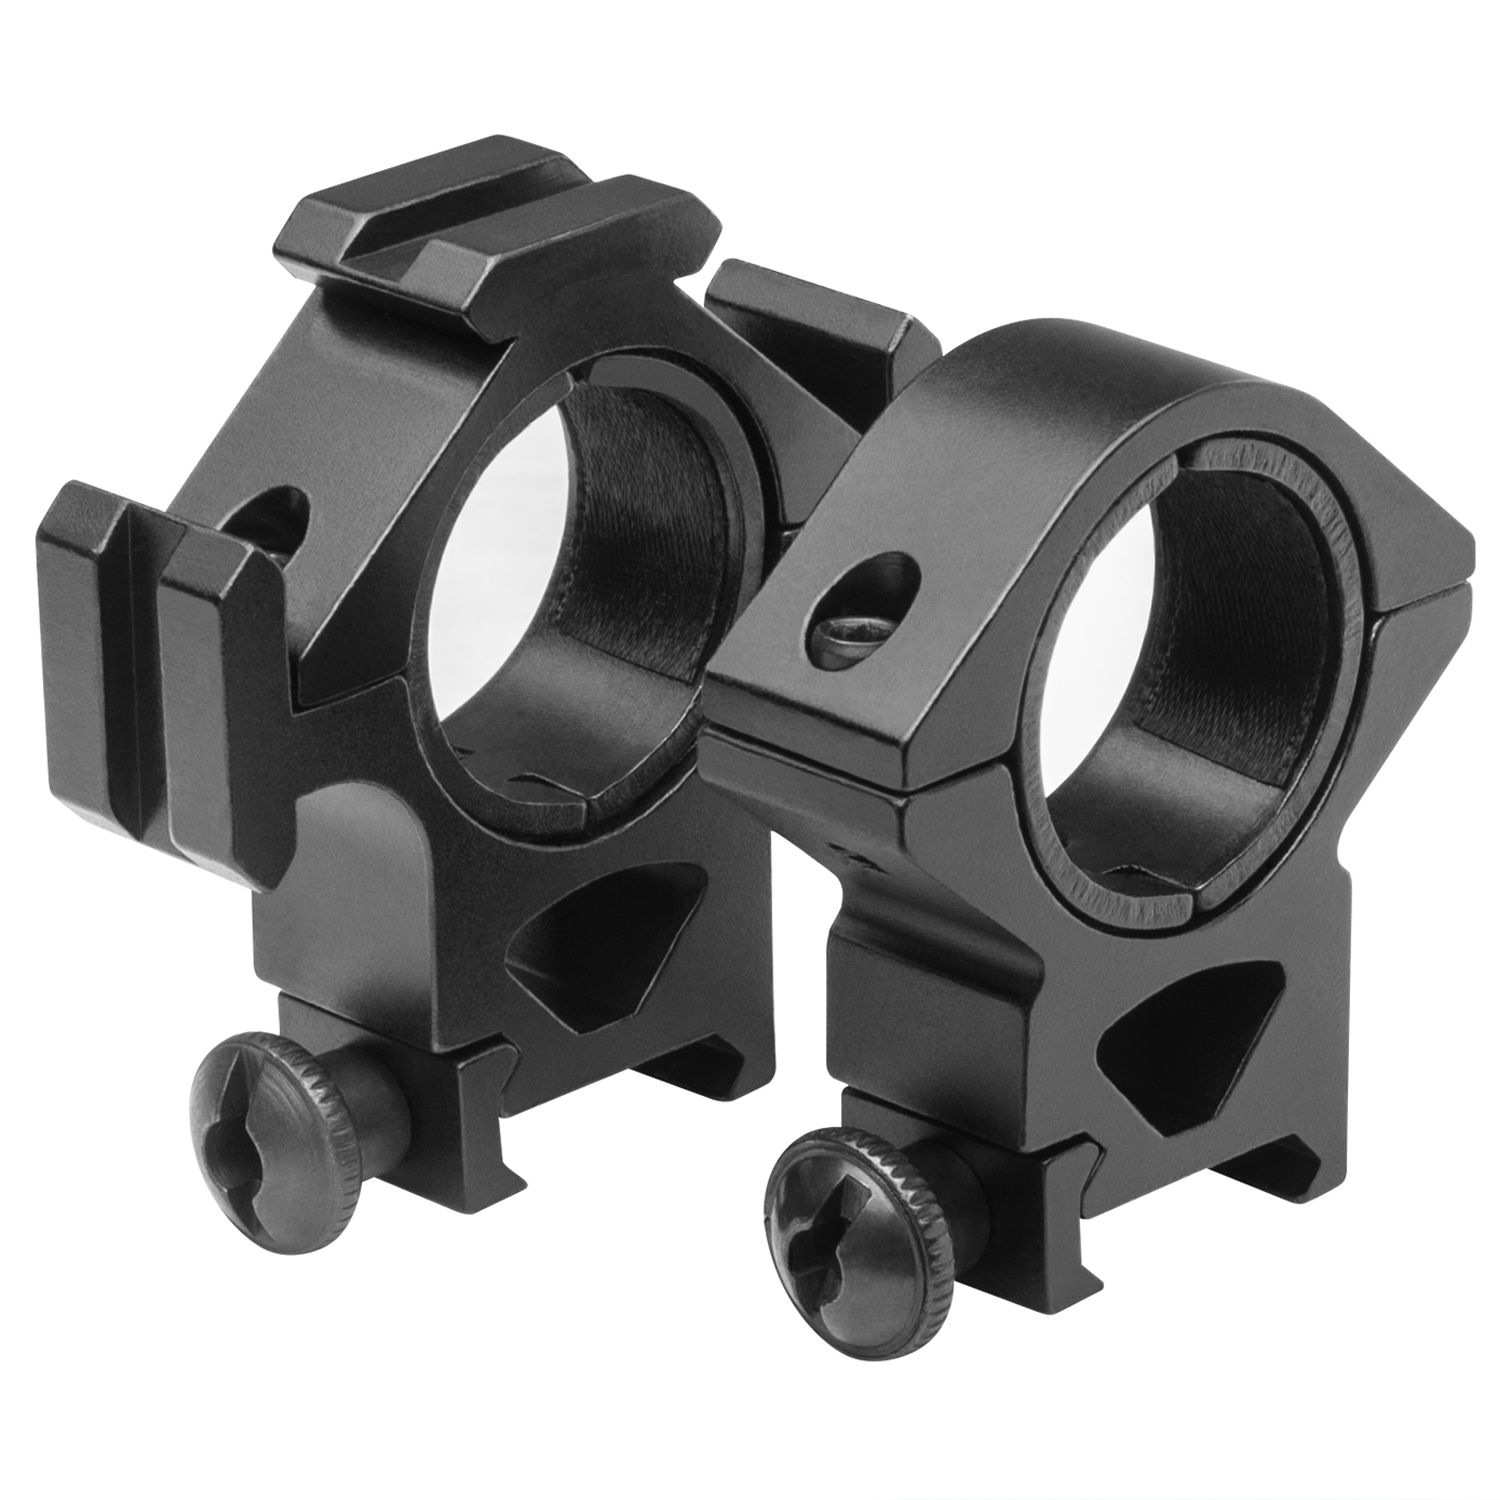 Ncstar RB11 Tri-Ring 1 Inch 30Mm Mount